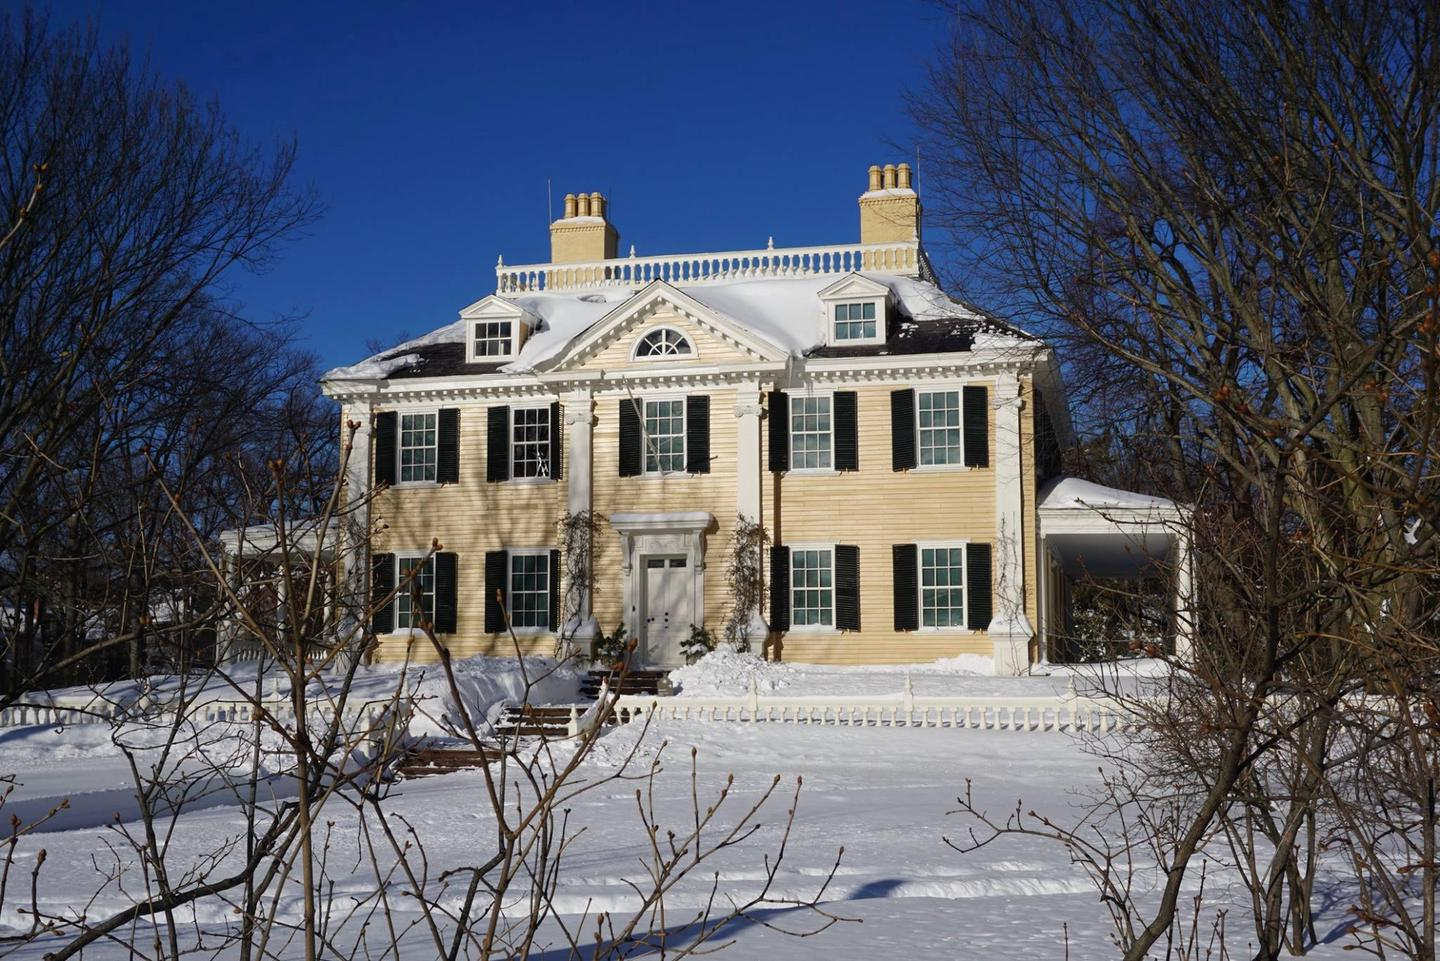 Winter at Longfellow House-Washington's Headquarters National Historic SiteNew fallen snow blankets the historic mansion.